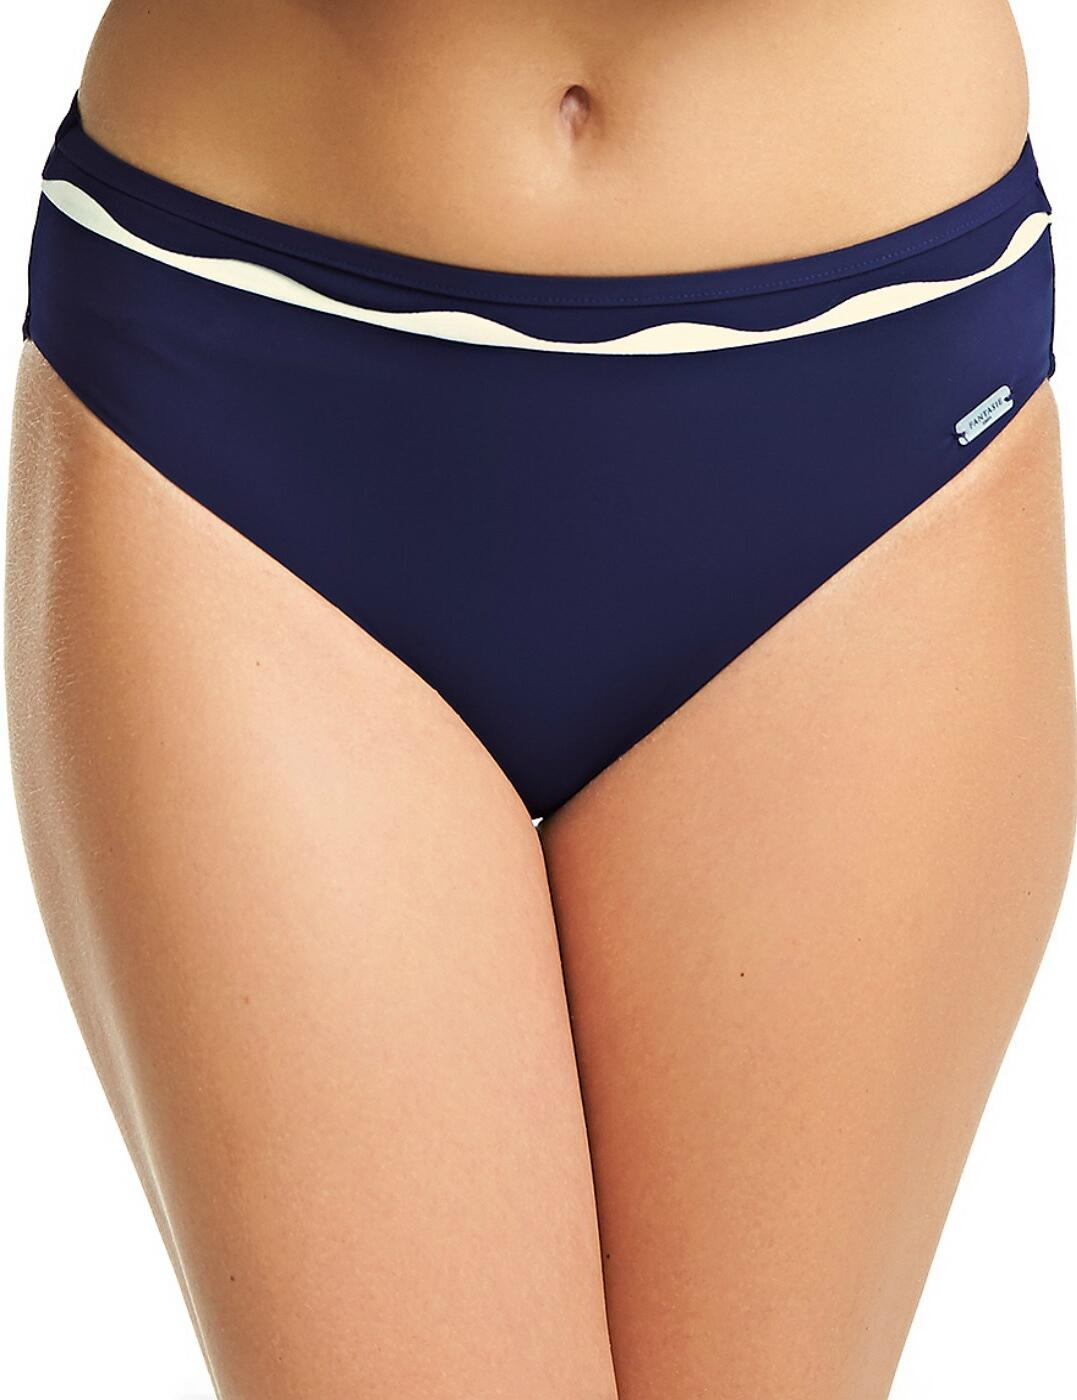 6234 Fantasie Sainte Maxime Mid Rise Brief - 6234 Ink